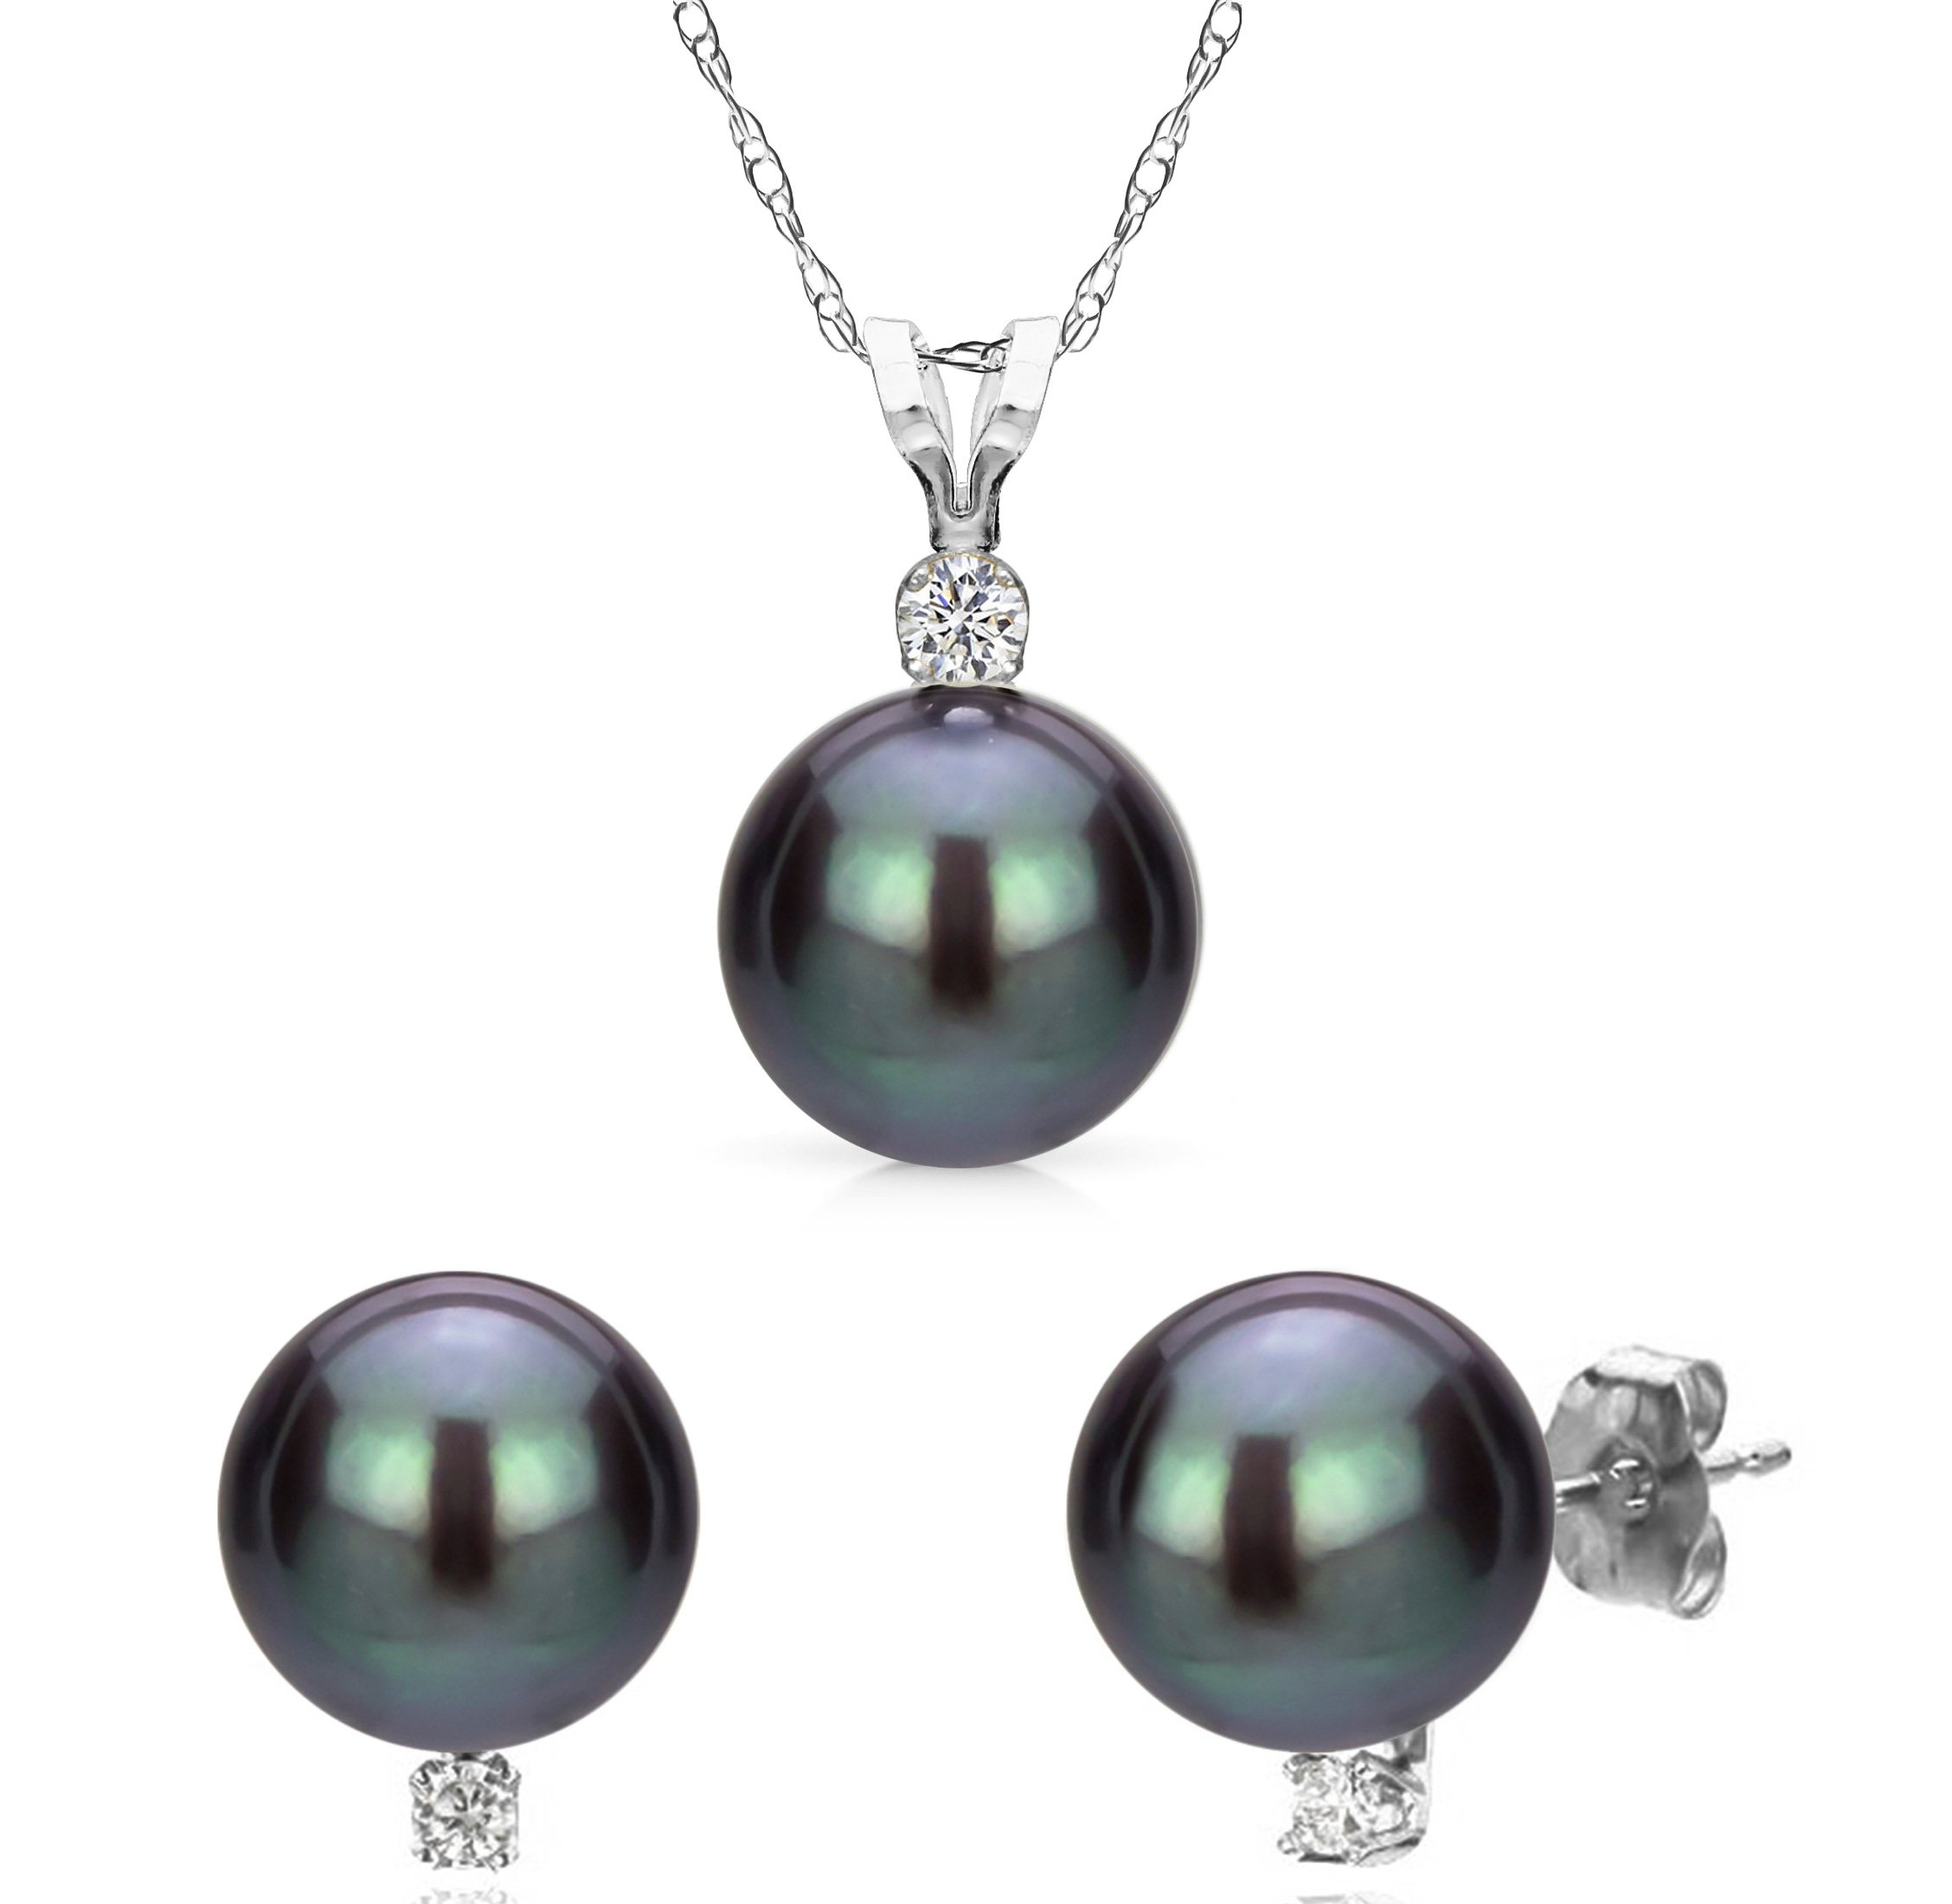 14K White Gold Necklace Pendant Freshwater Cultured Black Pearl Stud Earrings Gift for Mom 9-9.5mm